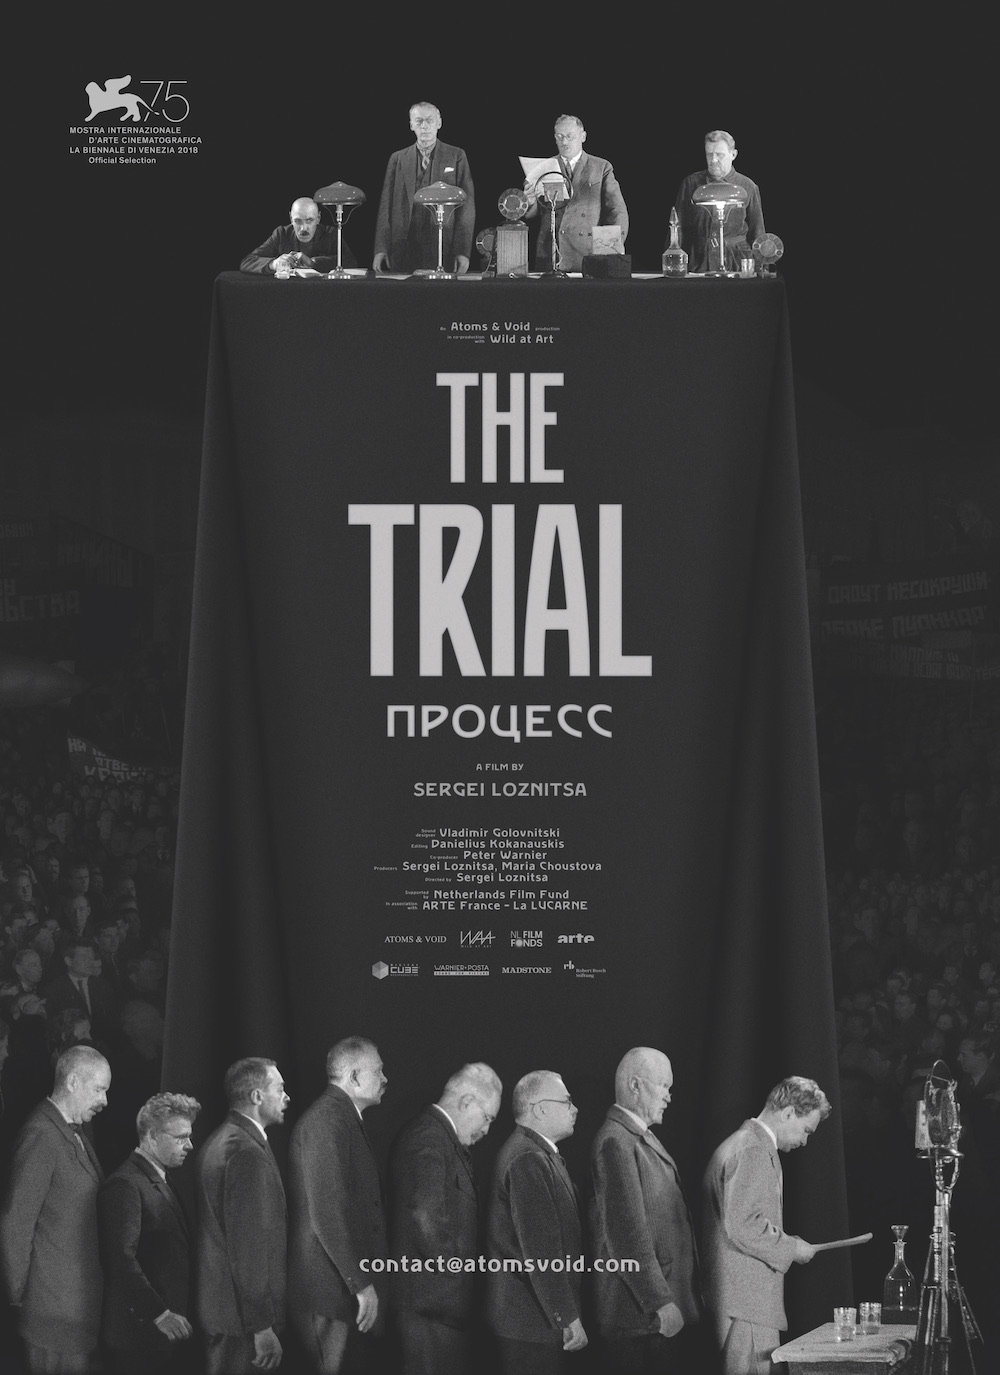 Poster for Sergei Loznitsa's The Trial (2018)